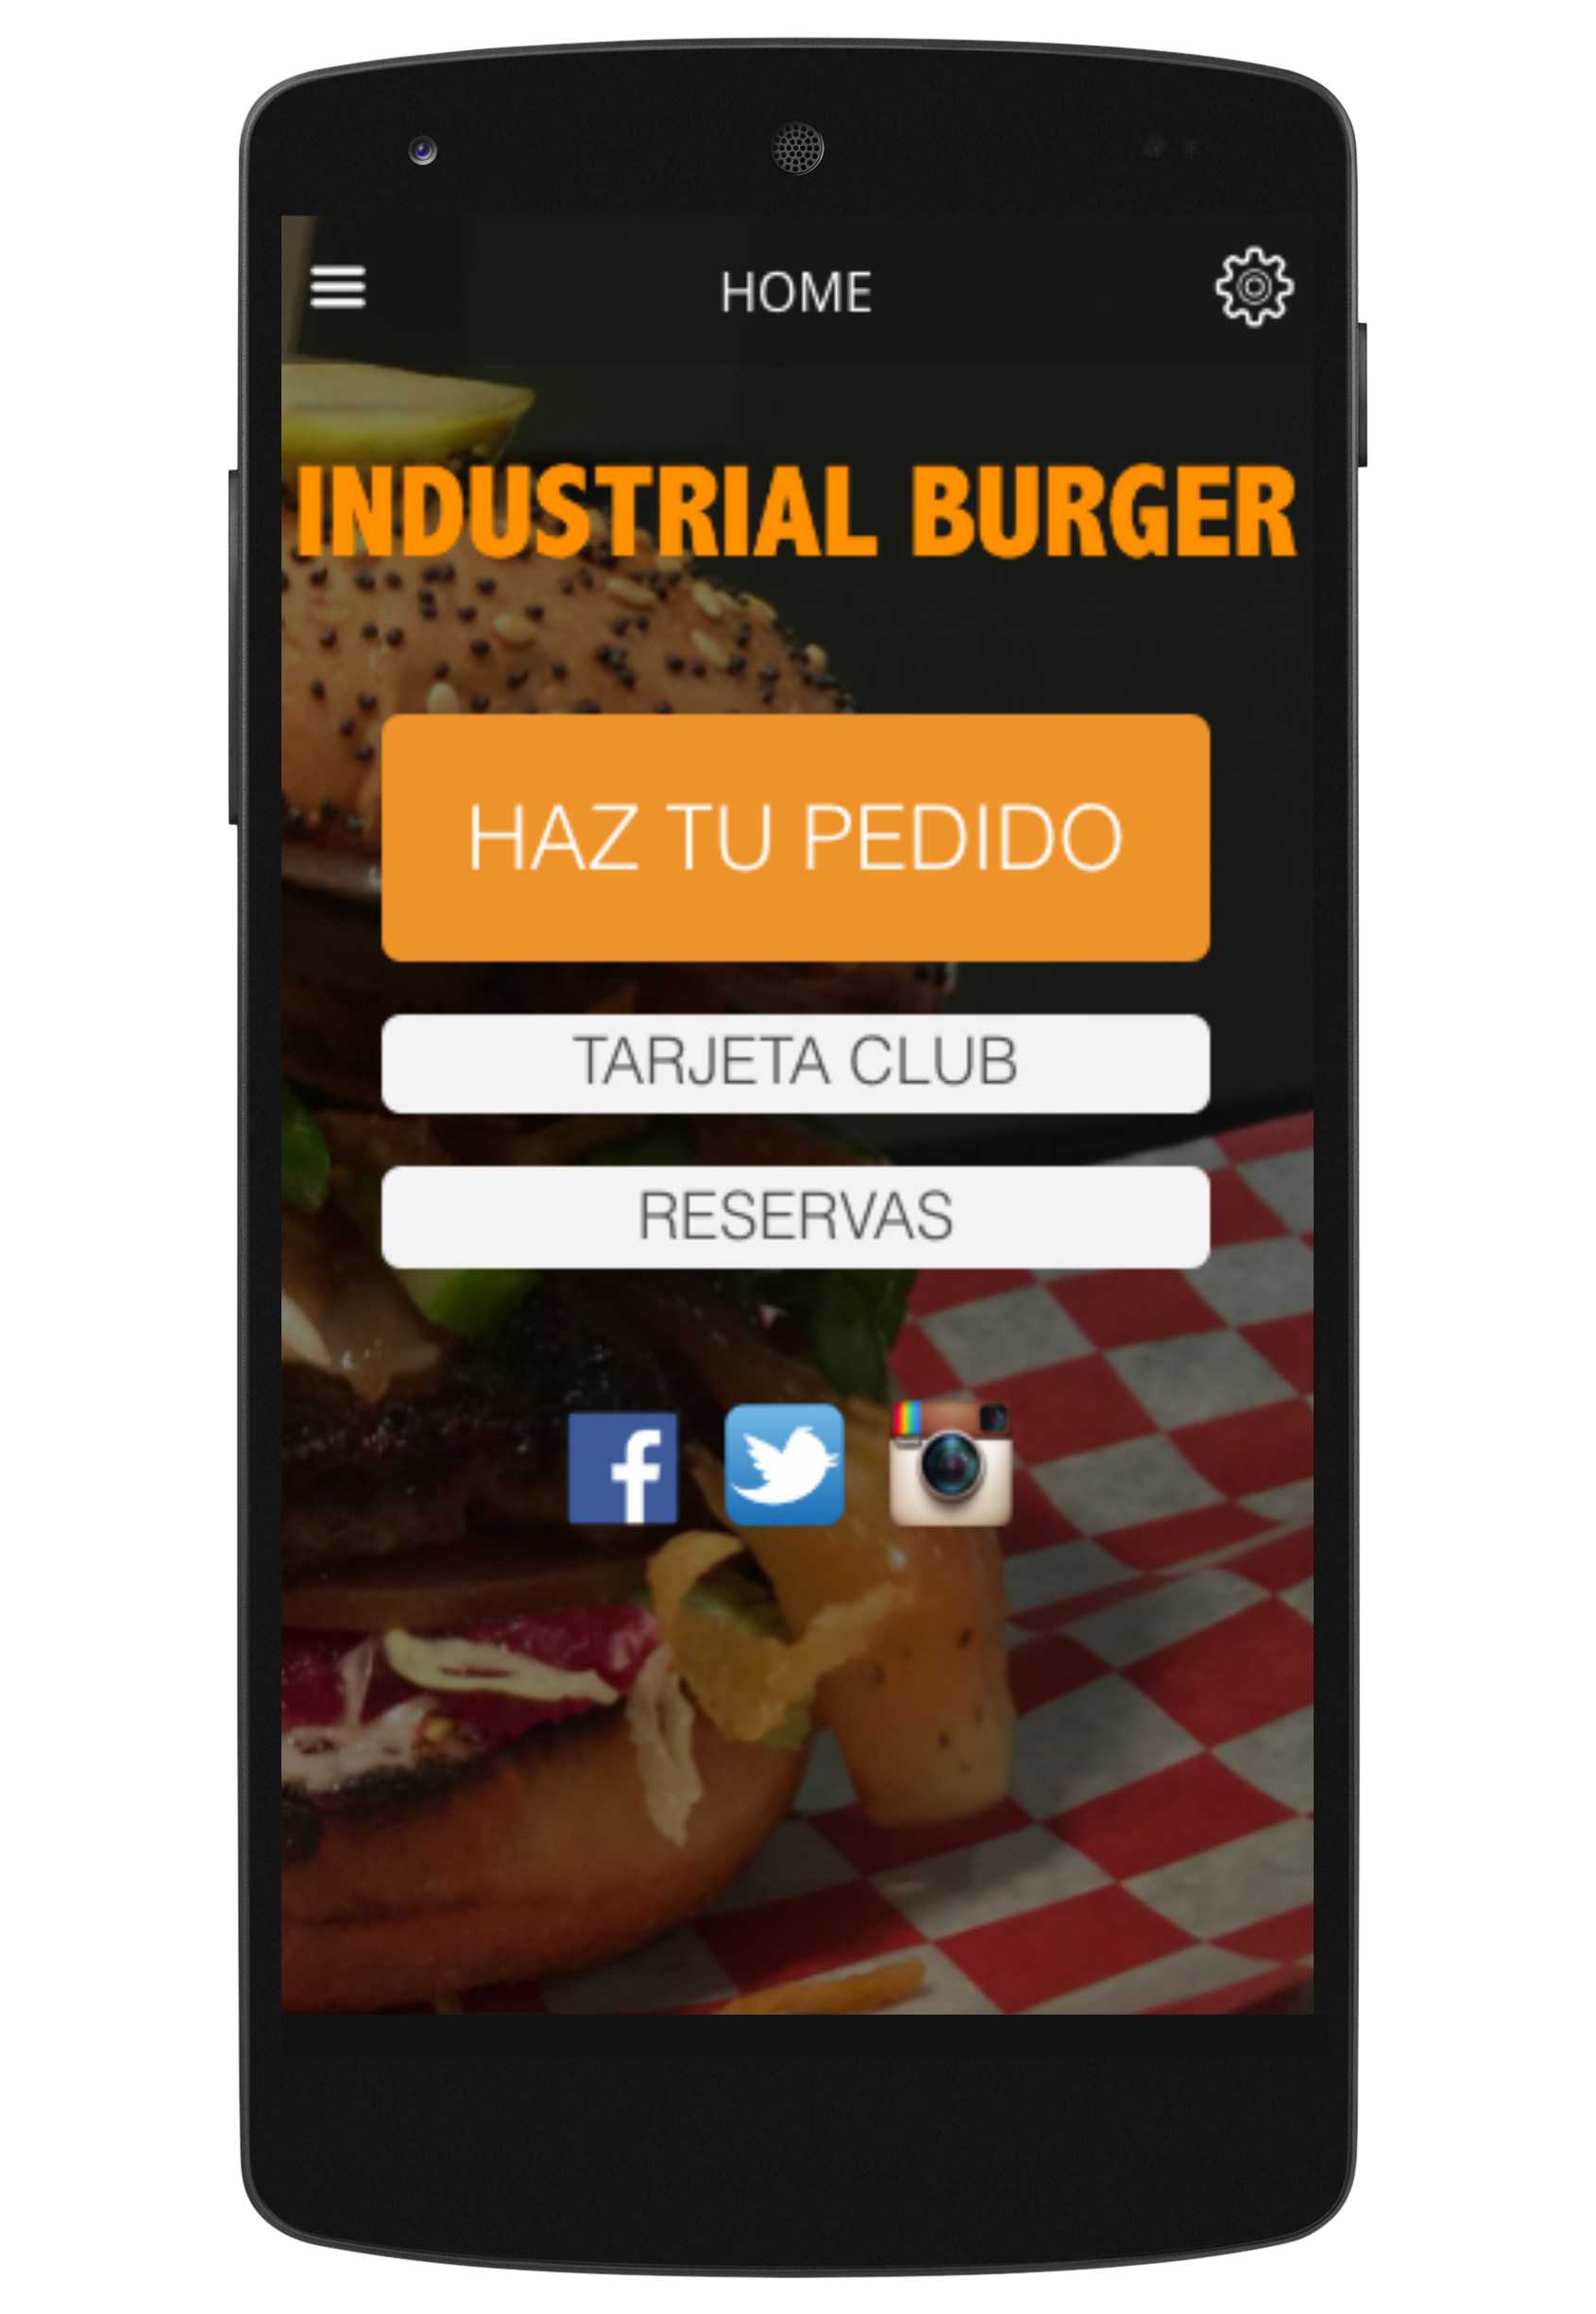 Industrial Burger